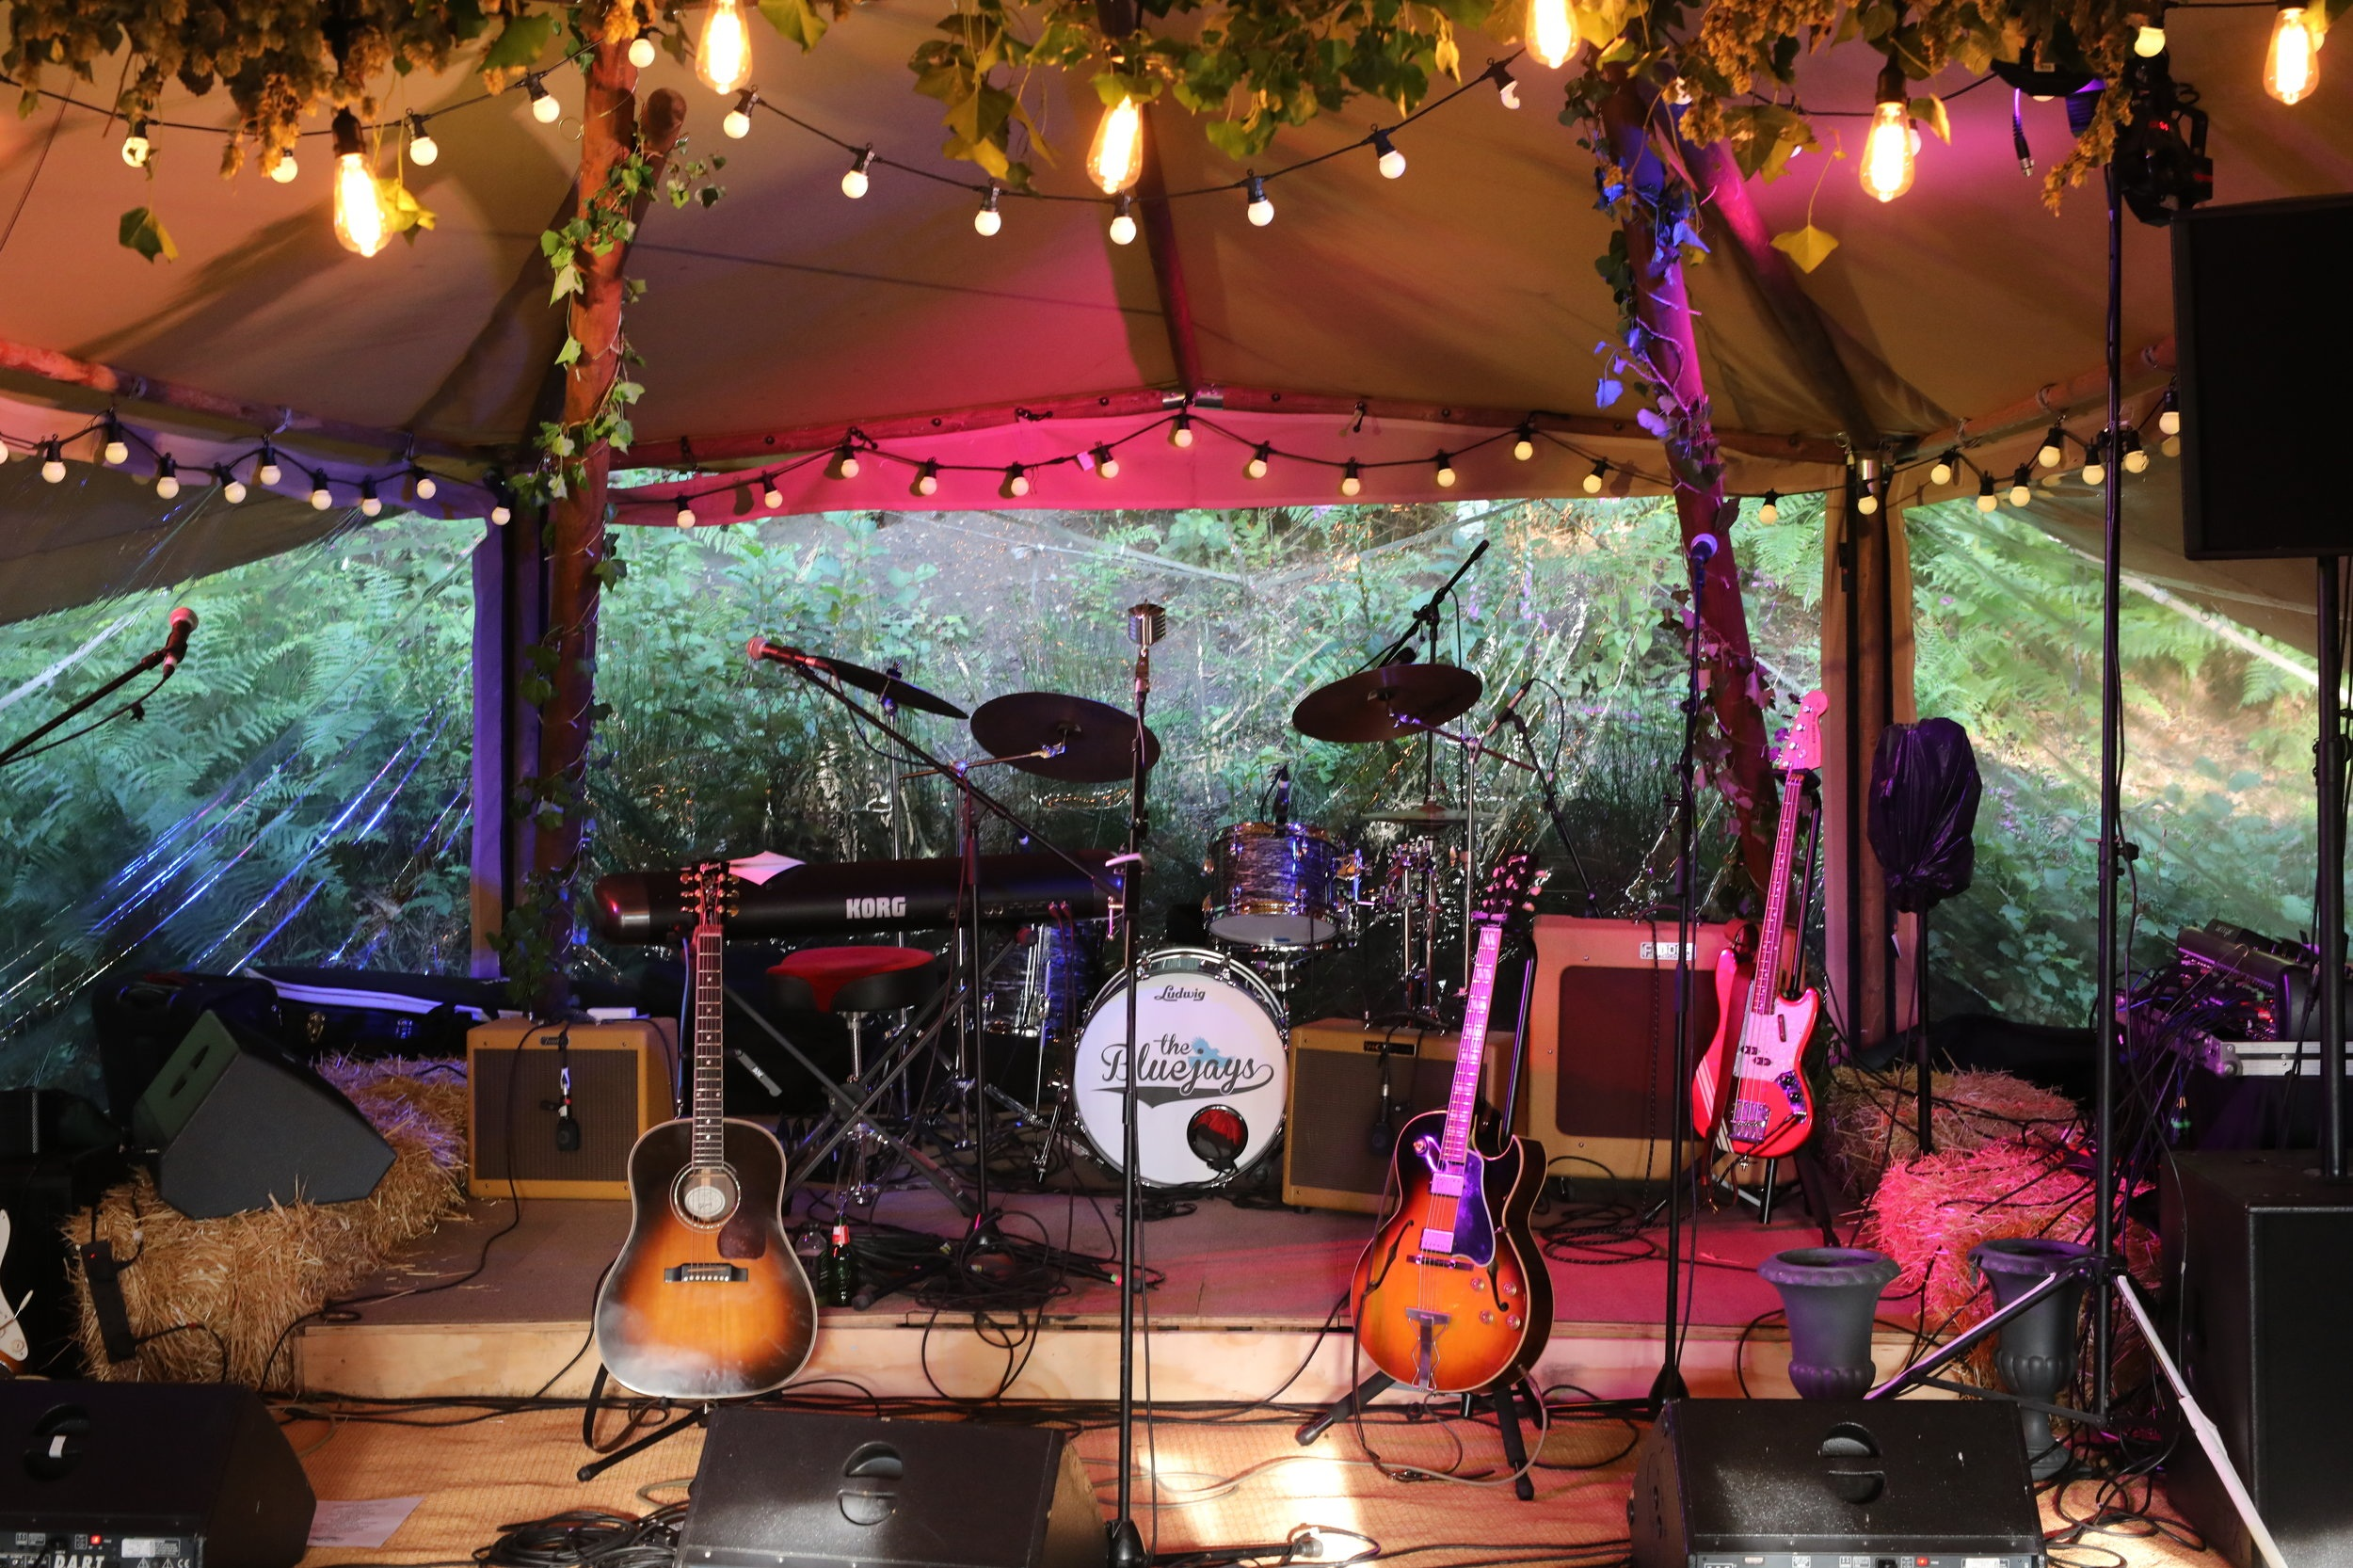 If guitars and tipis are your thing, it really doesn't get any better than this.